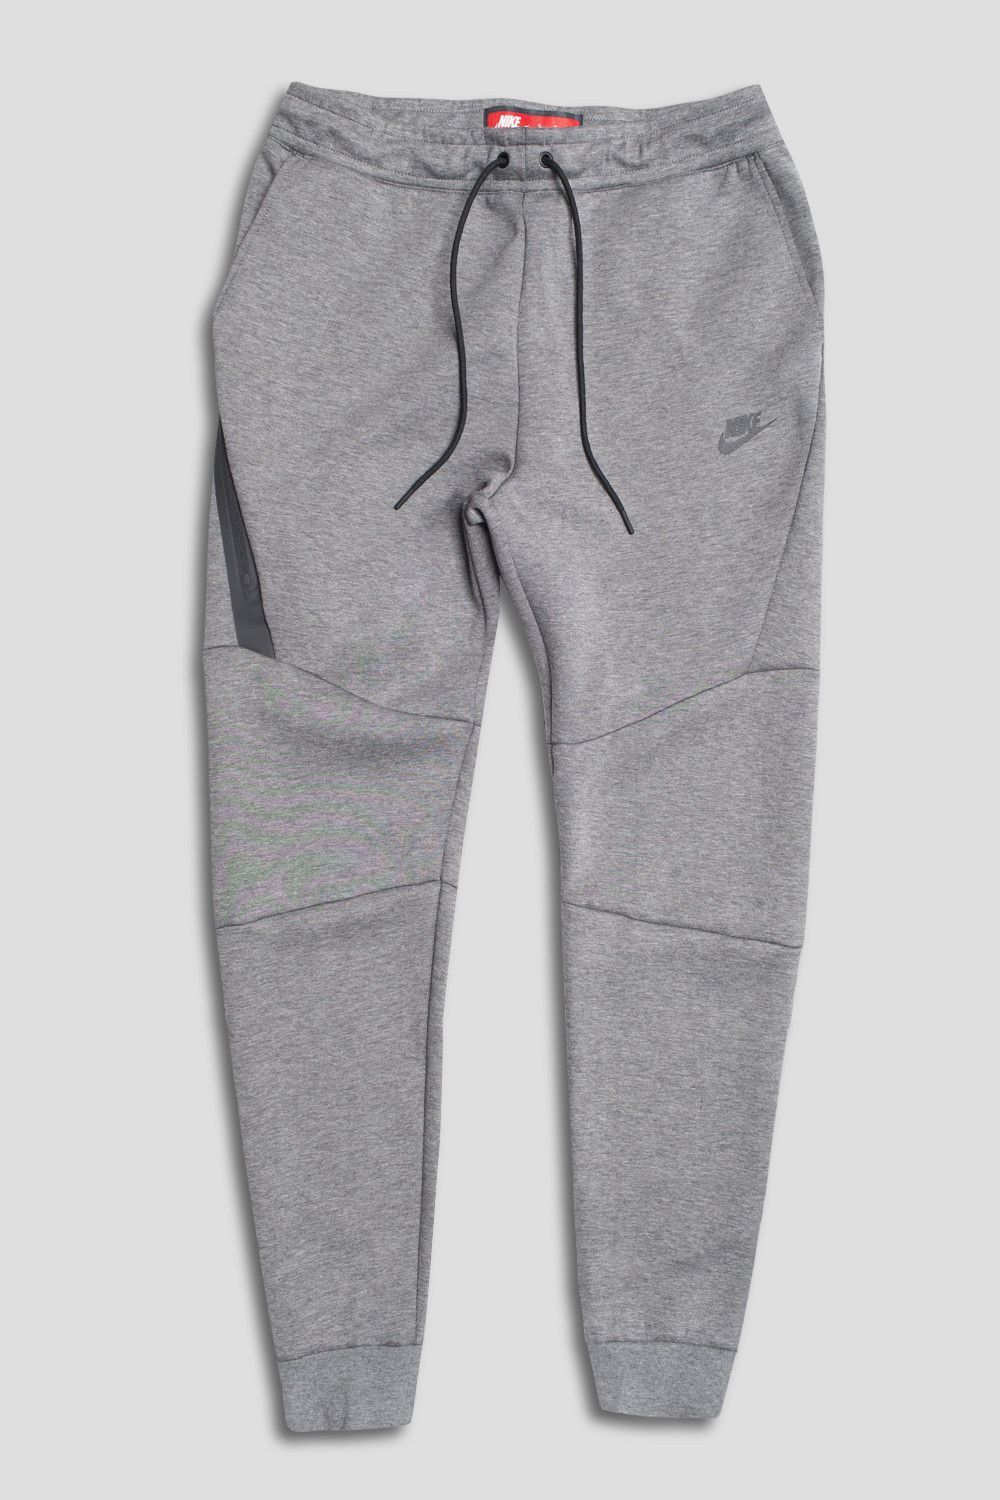 100% authentic 7fcee 549e0 The Nike Sportswear Tech Fleece Men s Joggers give you all day comfort in a…